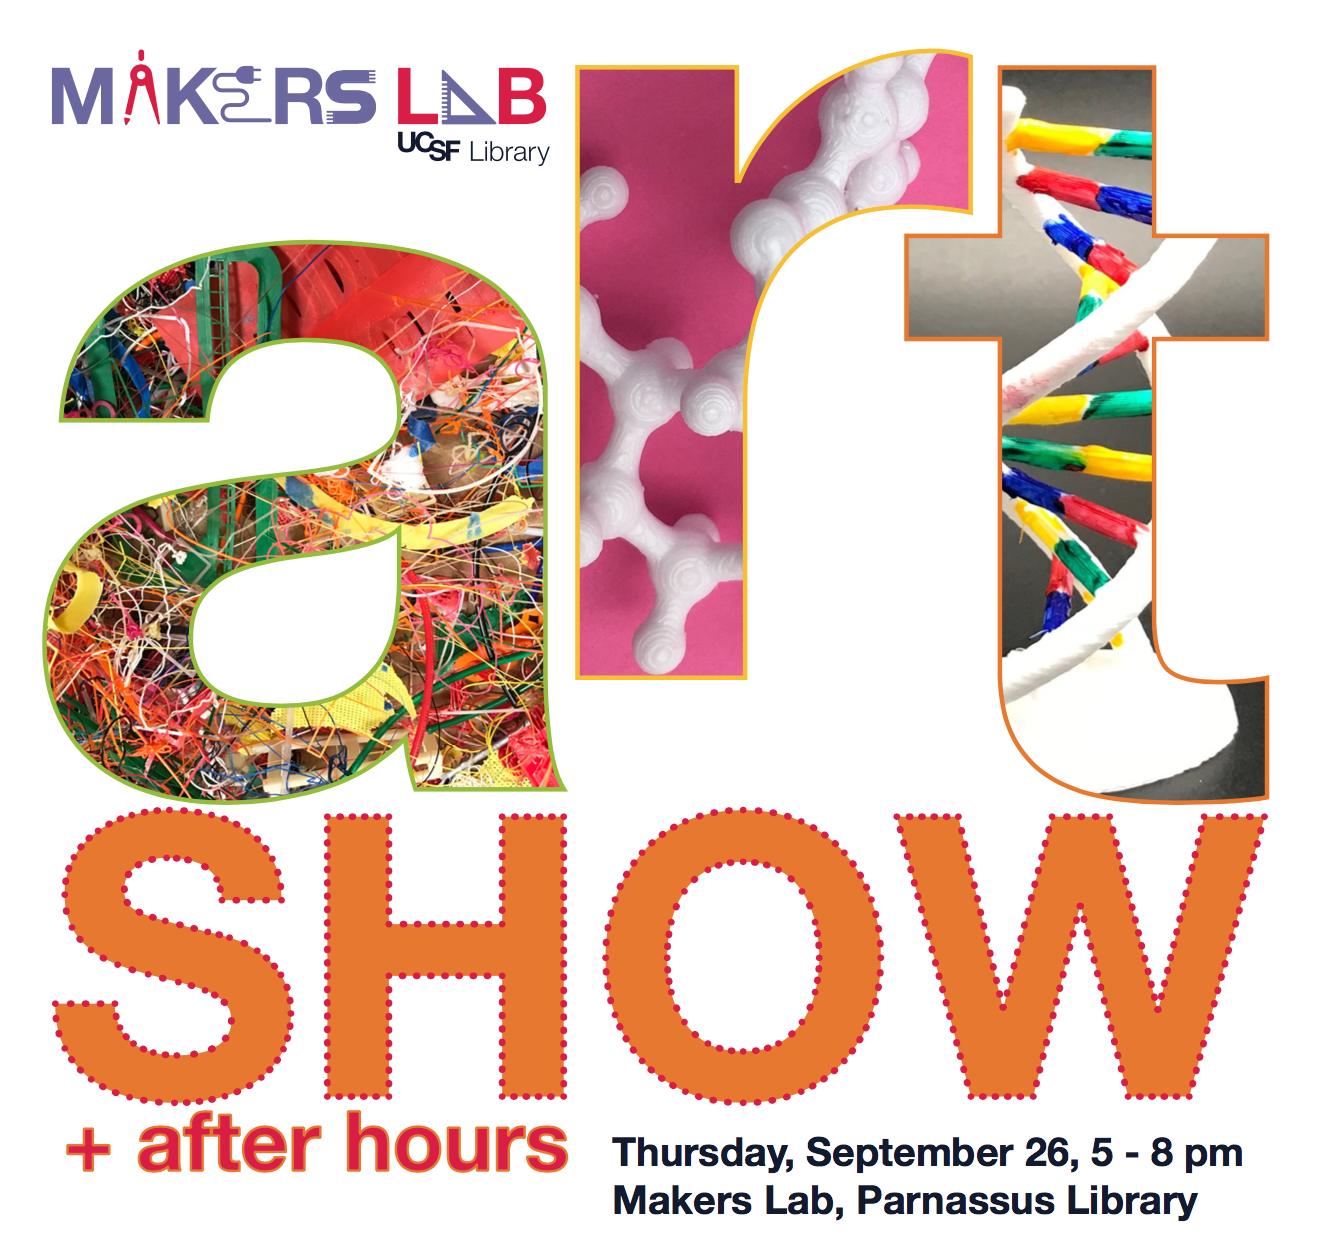 Makers Lab Art Show and After Hours